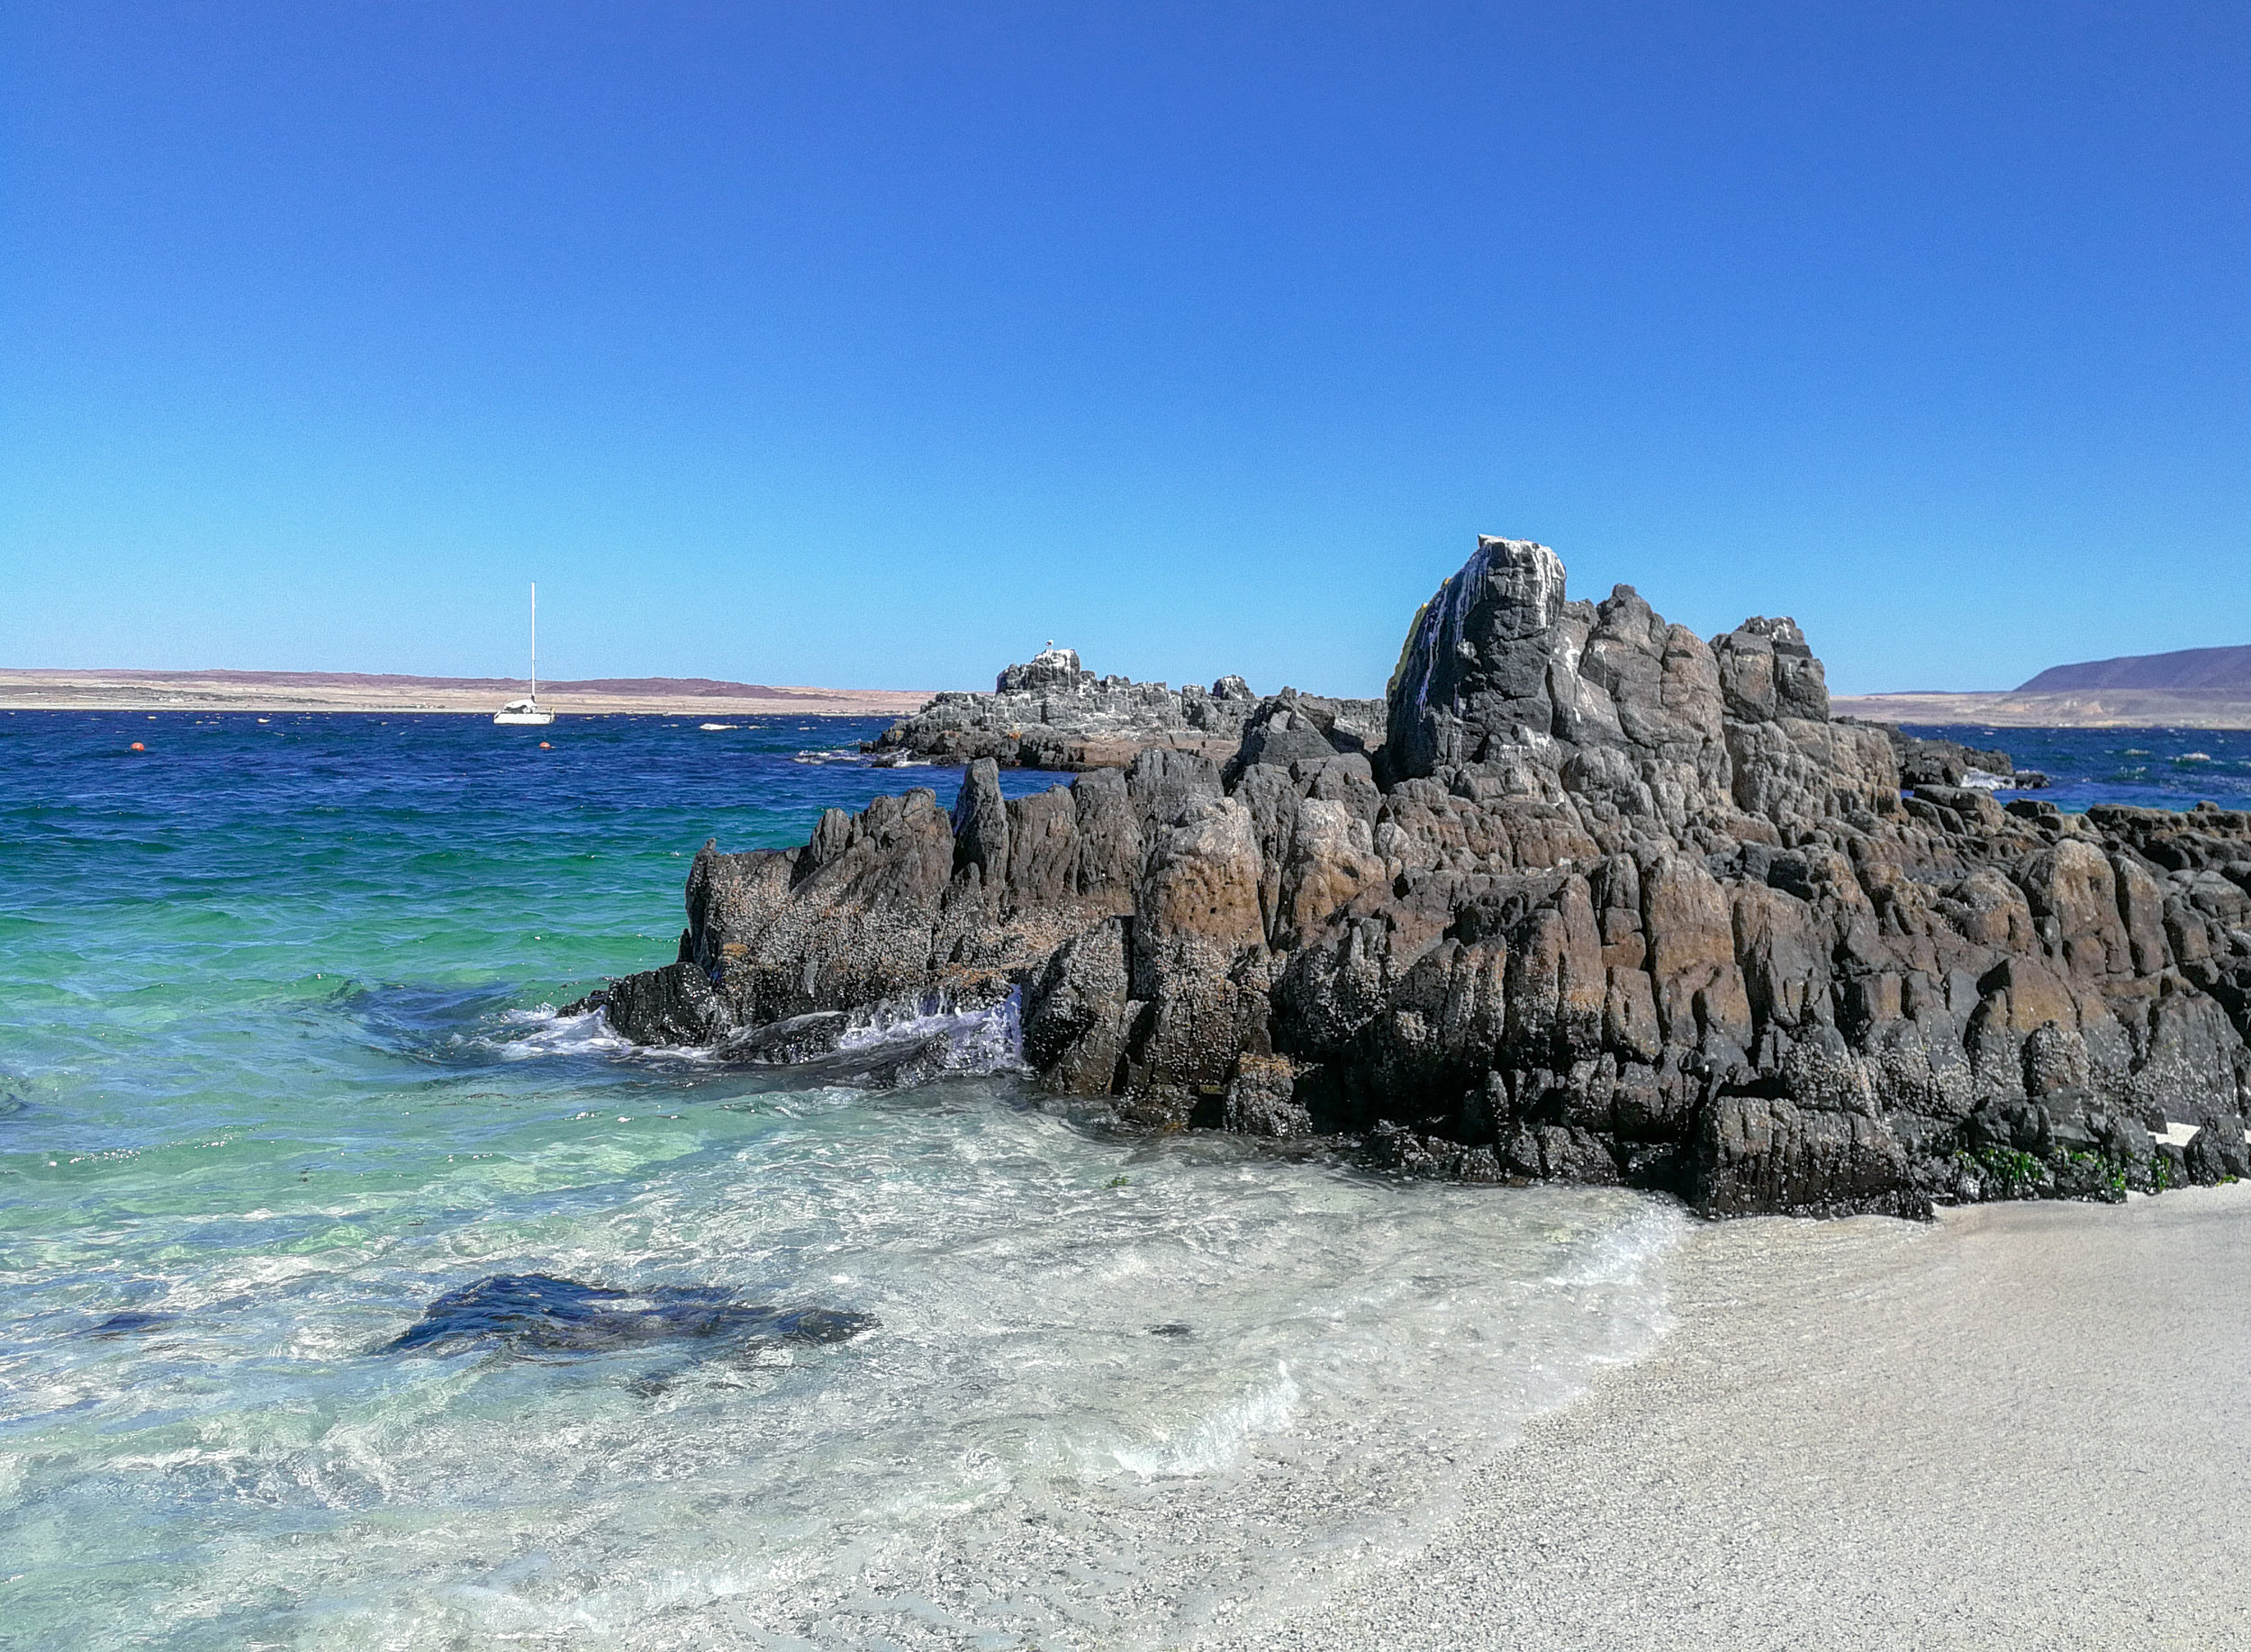 Bahía Inglesa in Chile near Caldera. This beautiful and clean beach on the northern coast of Chile is worth a visit if you are planning vacation. Learn more about ecotourism and traveling in South America here.